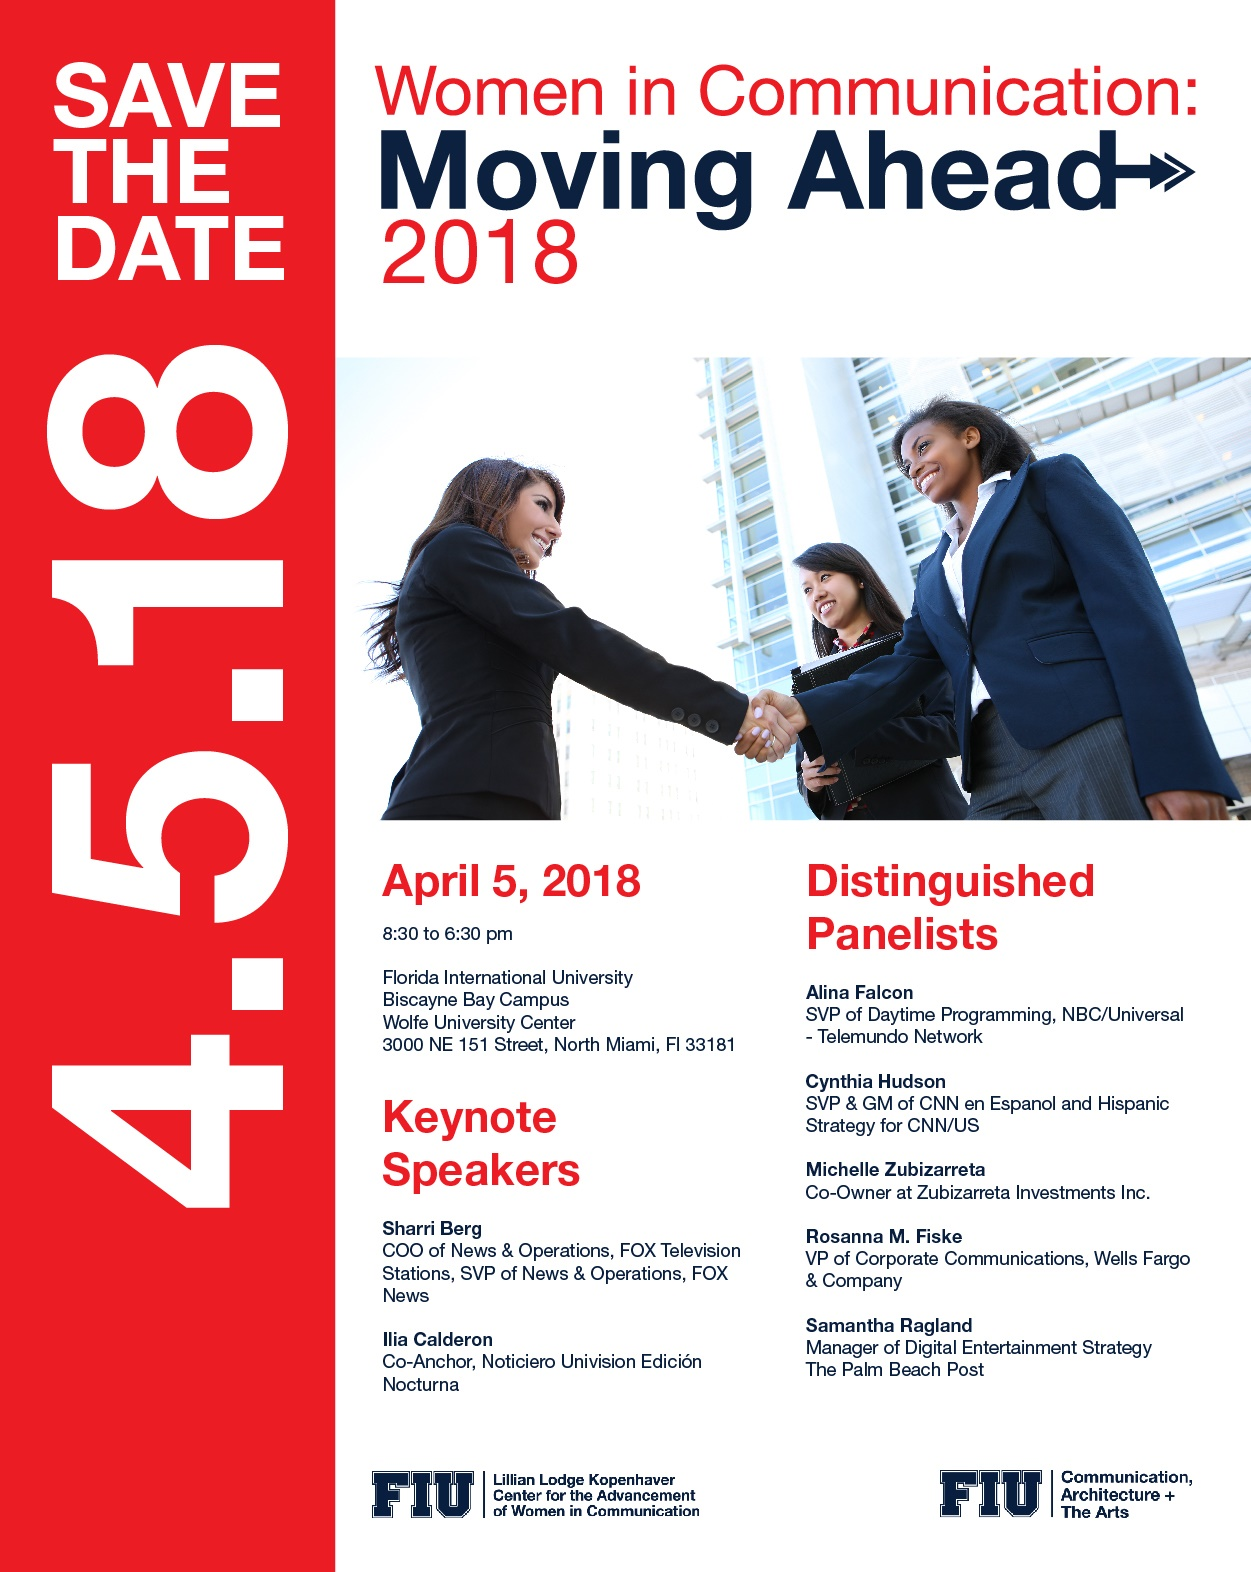 2018 Women in Communication: Moving Ahead Conference - LLK